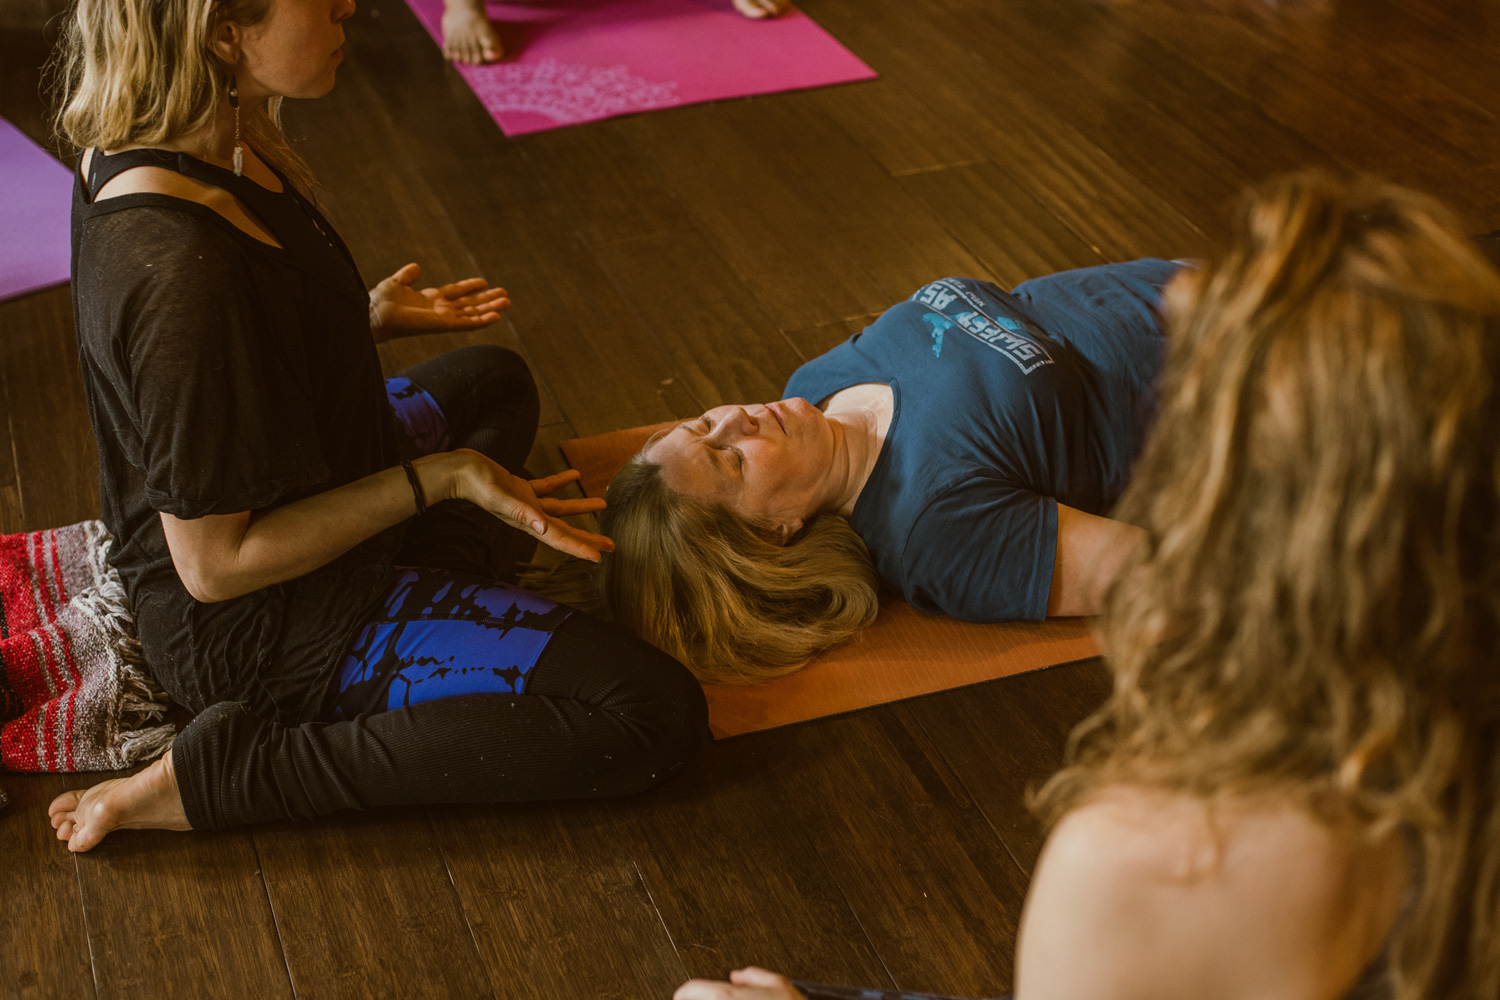 bhakti-2018-yin-yoga-teacher-training-12.jpg